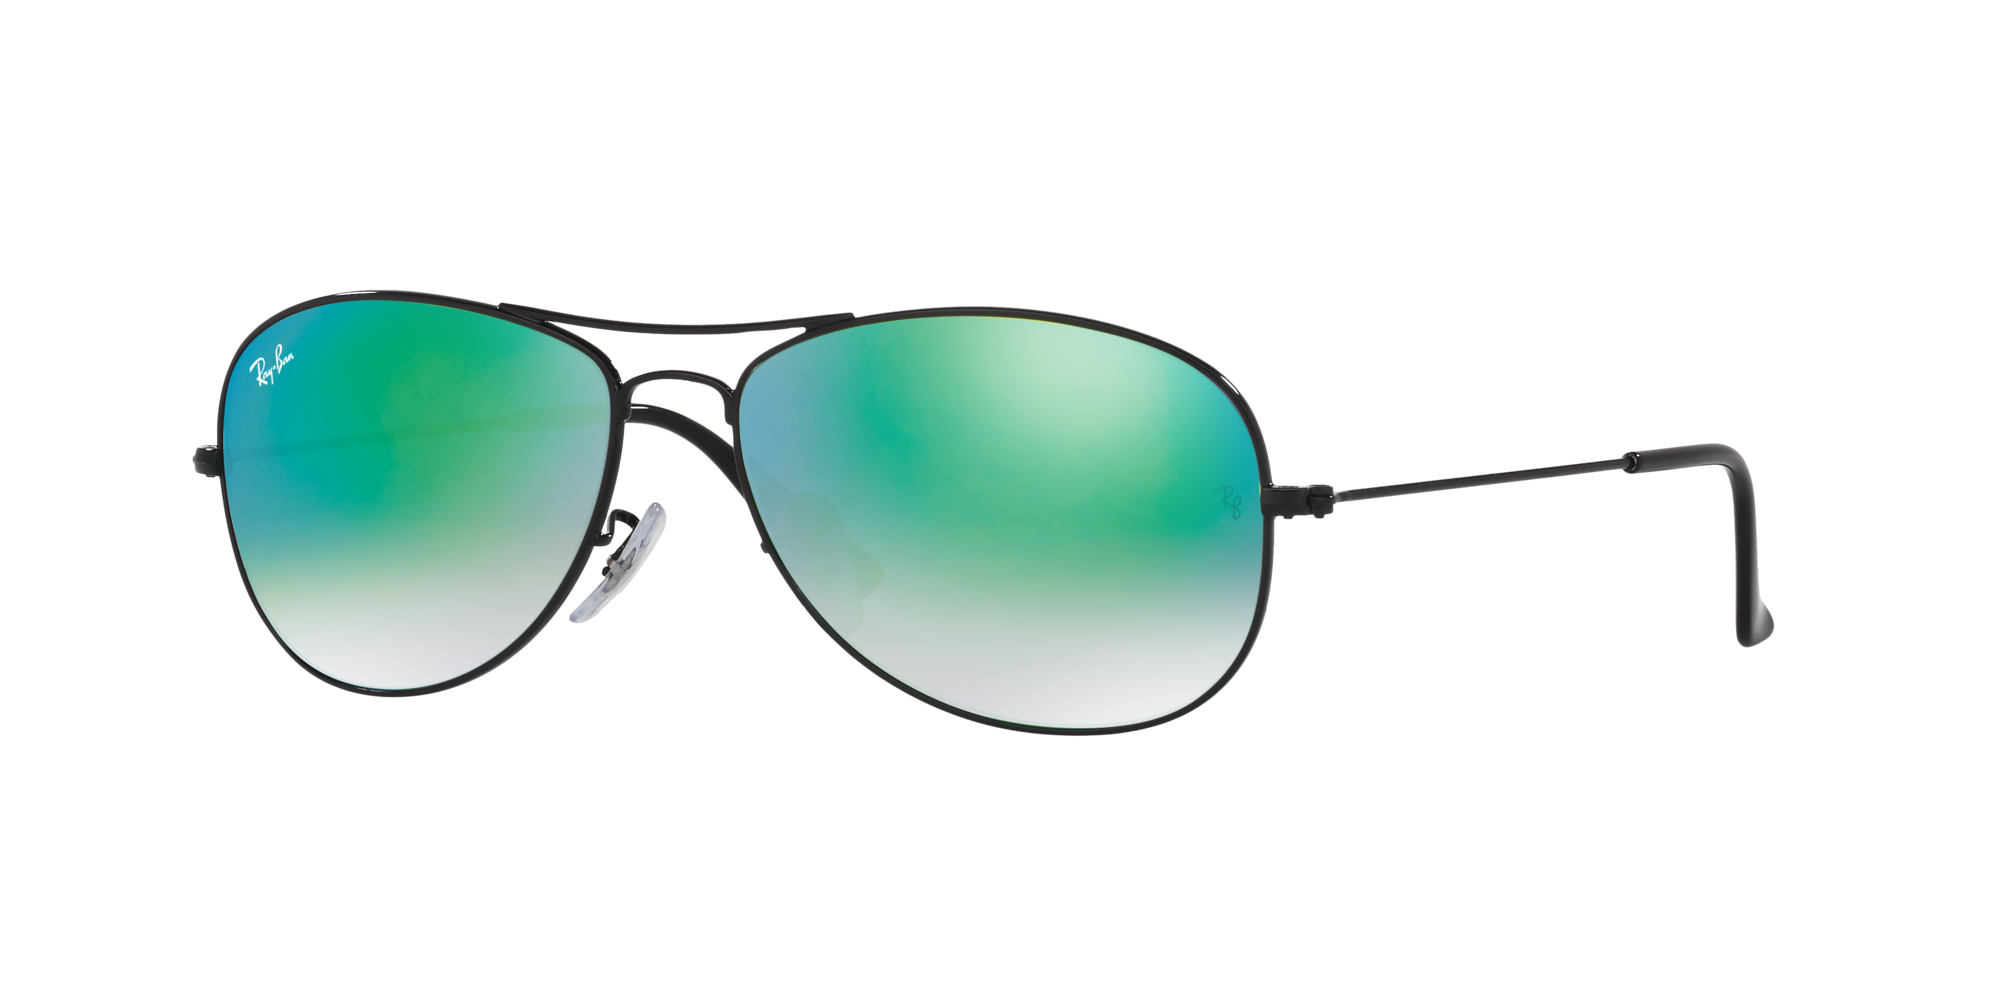 Ray Ban Unisex  RB3362 COCKPIT FLASH LENSES GRADIENT -  Frame color: Black, Lens color: Green, Size 59-14/135